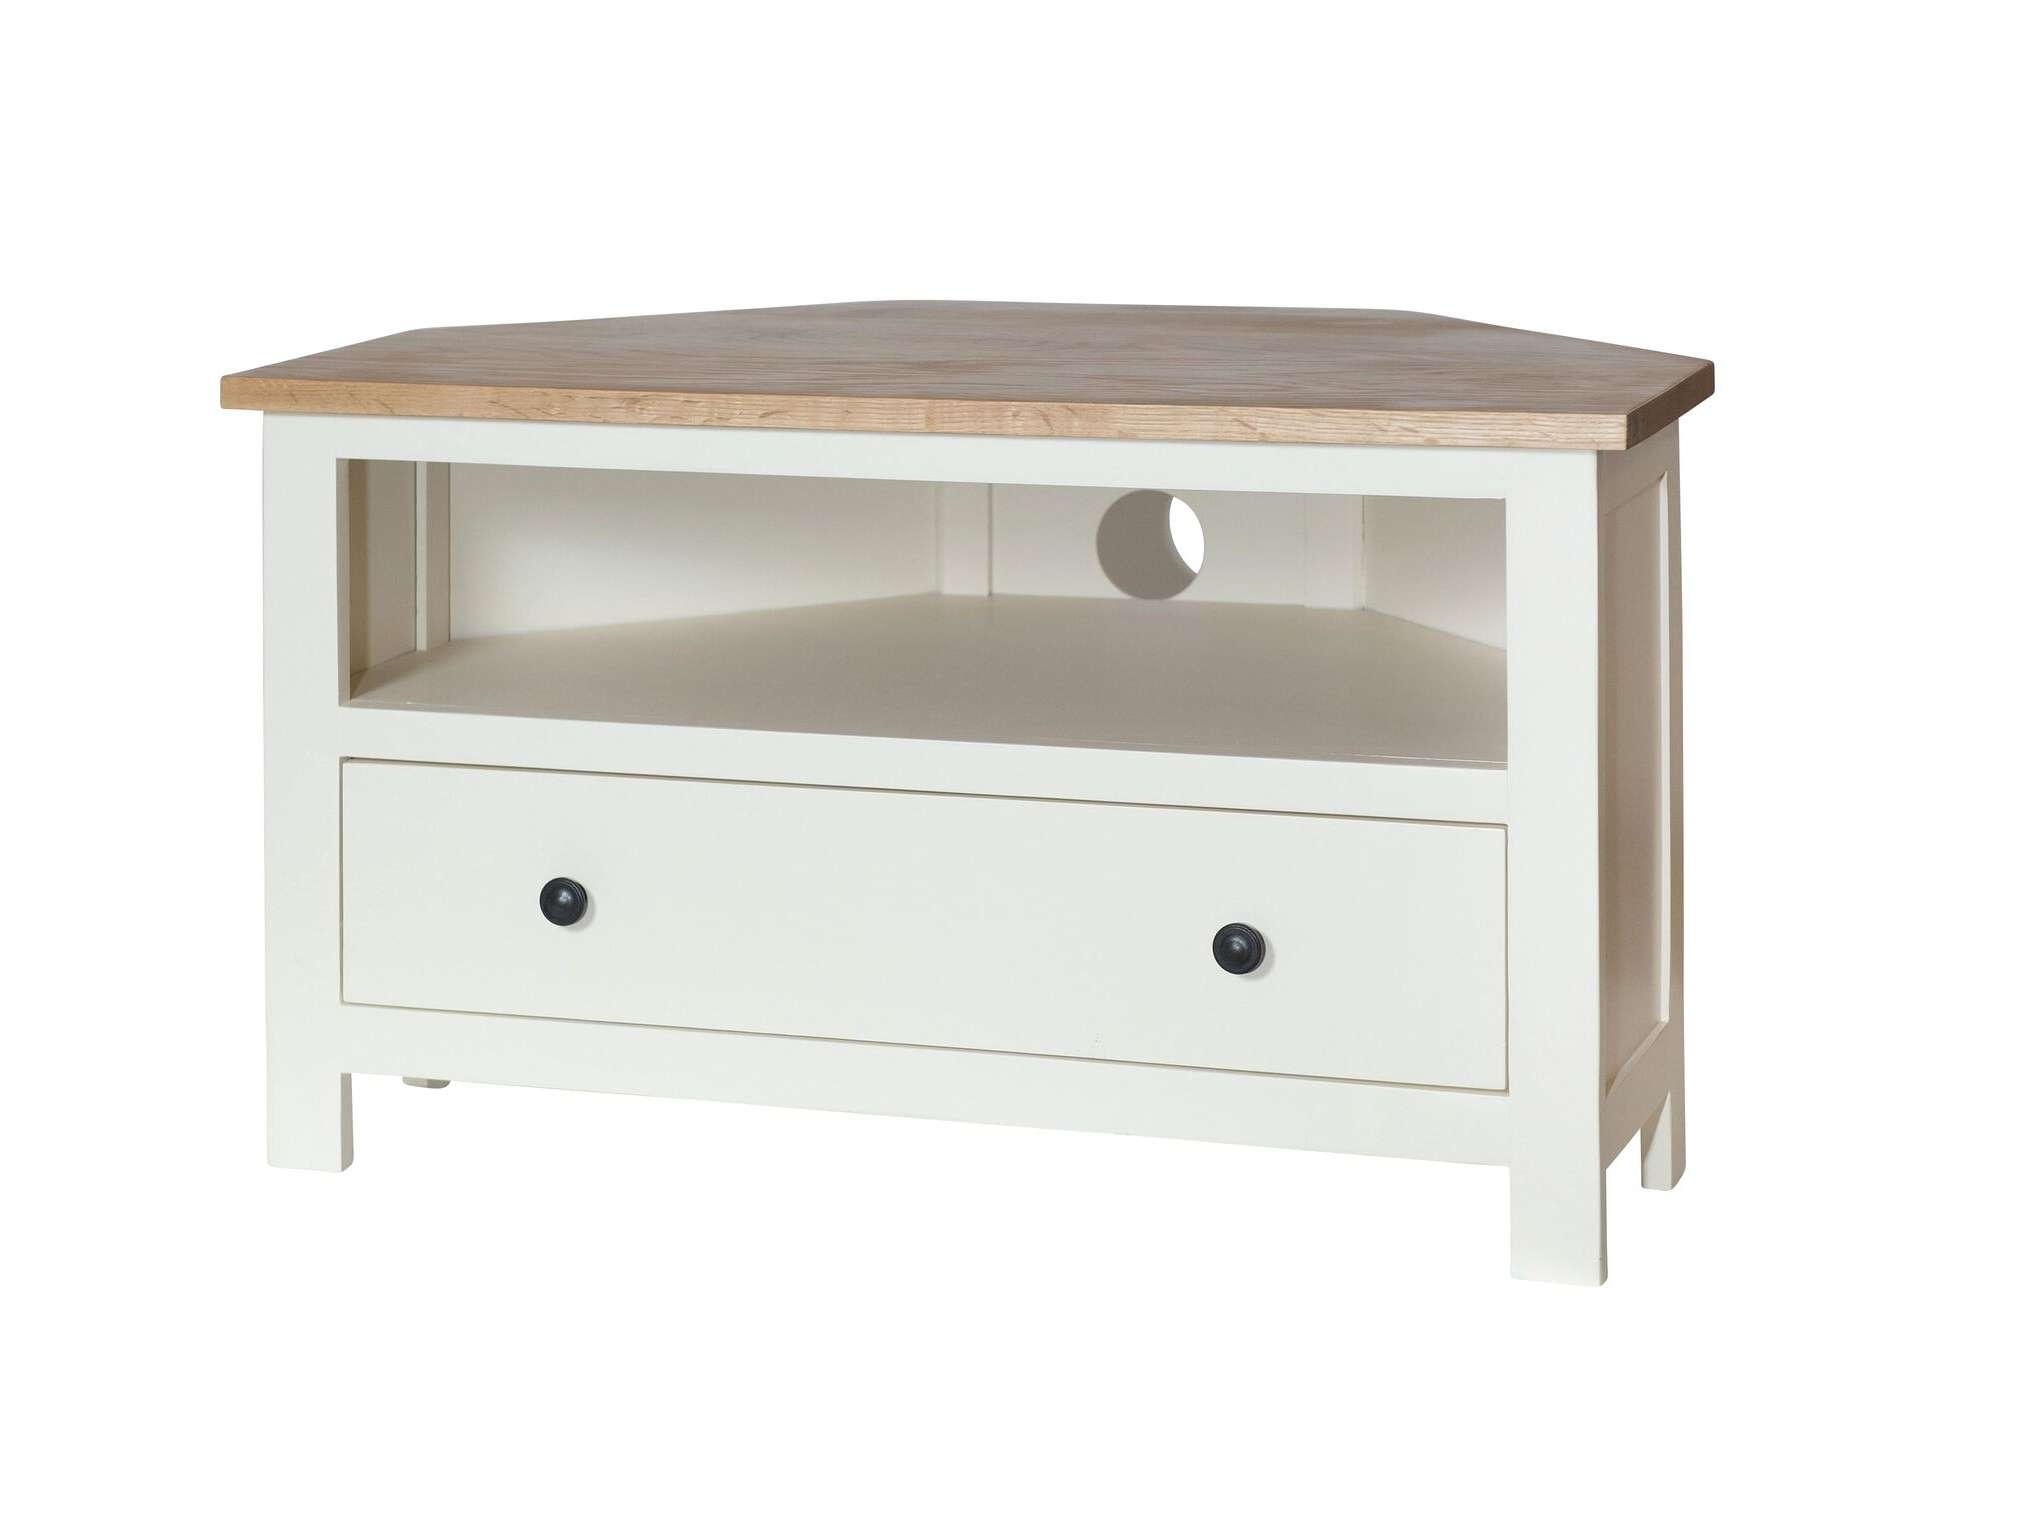 S0 – Cream Painted Oak Top Corner Tv Unit – Country Furniture Barn Within Painted Corner Tv Cabinets (View 17 of 20)